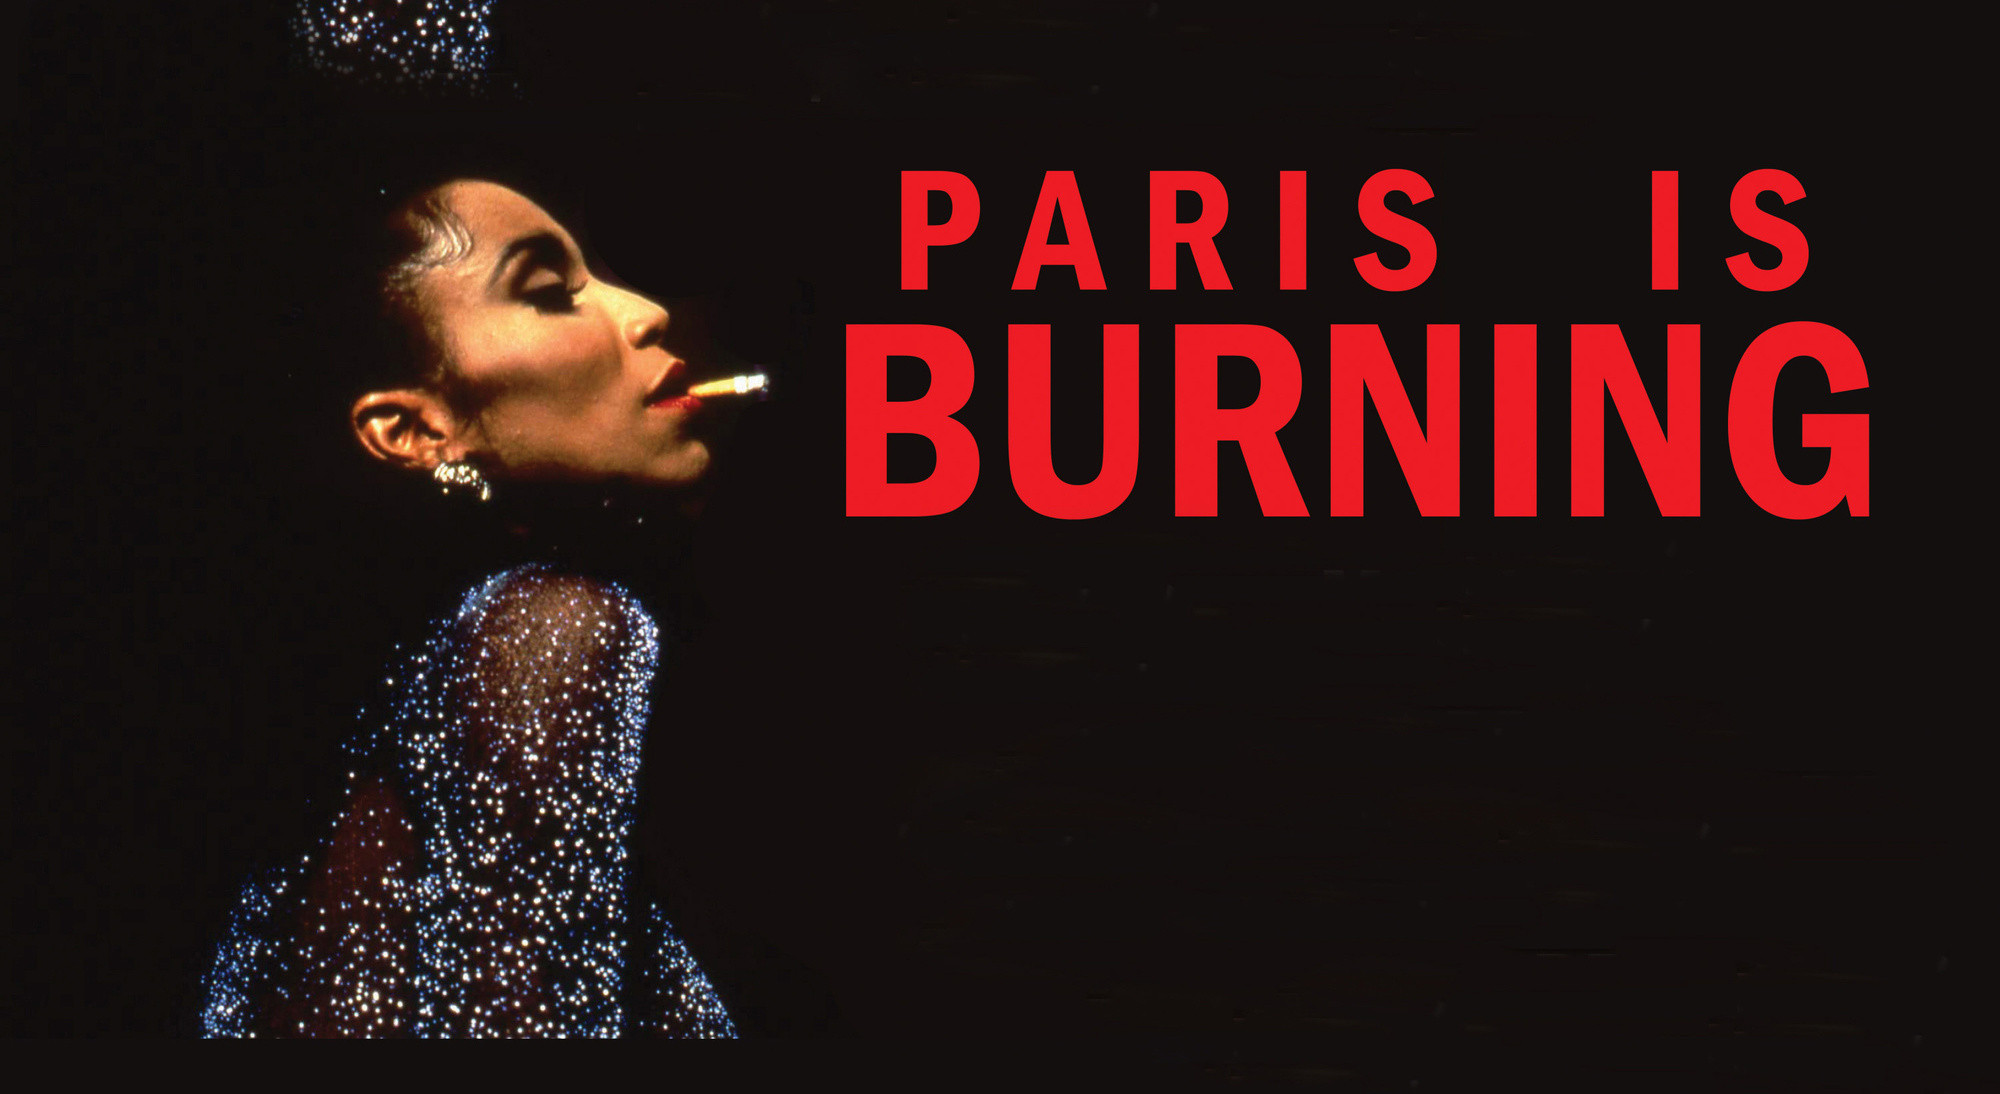 an analysis of paris is burning by jennie livingston A comparative analysis of the films, paris is burning, directed by jennie livingston and rize, directed by david lachapelle.